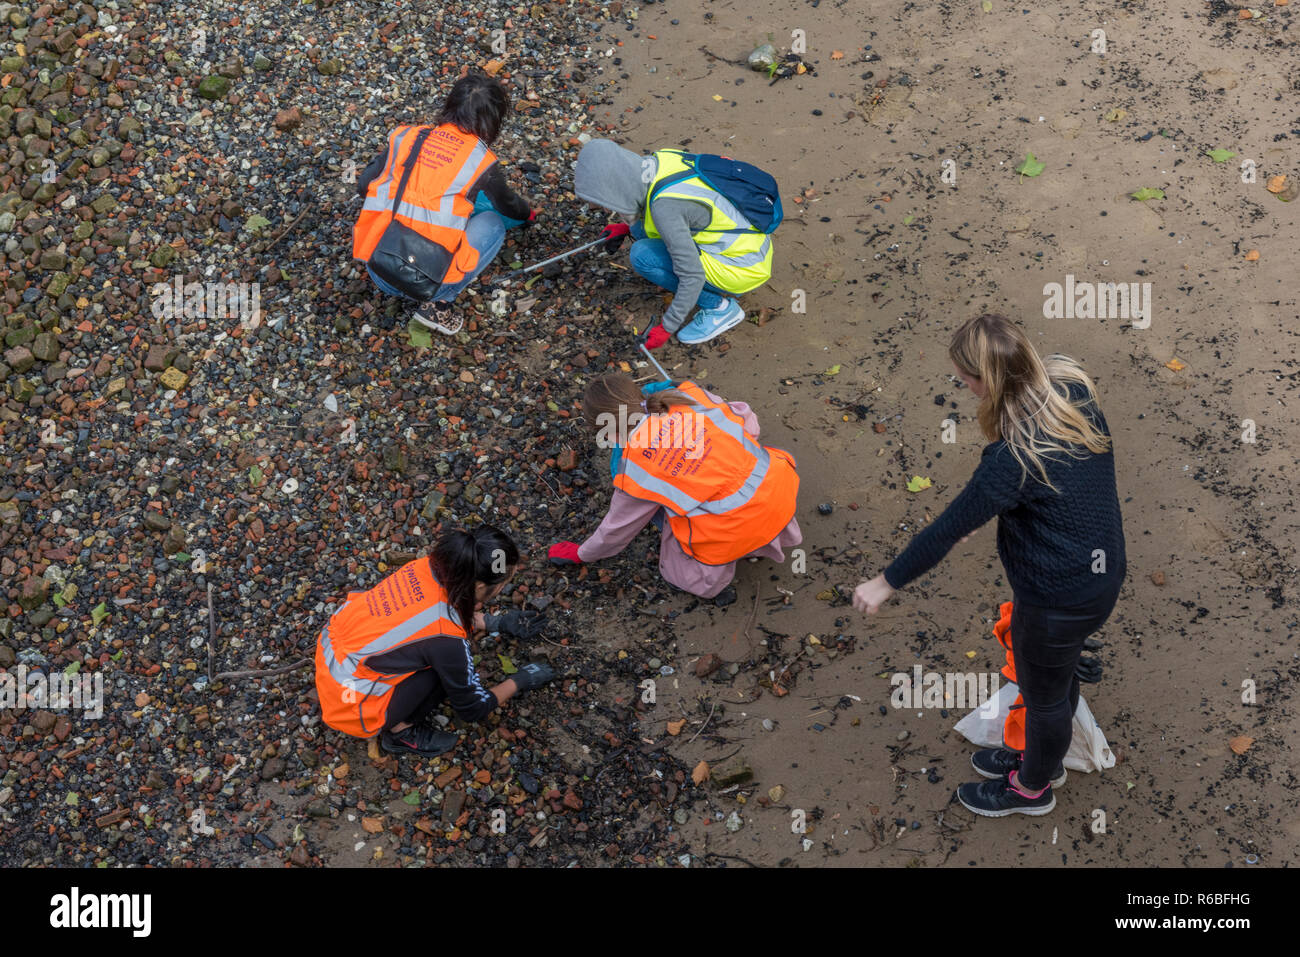 beach cleaners picking up plastic and rubbish from the beach or coast at low tide on the river thames in central london. - Stock Image